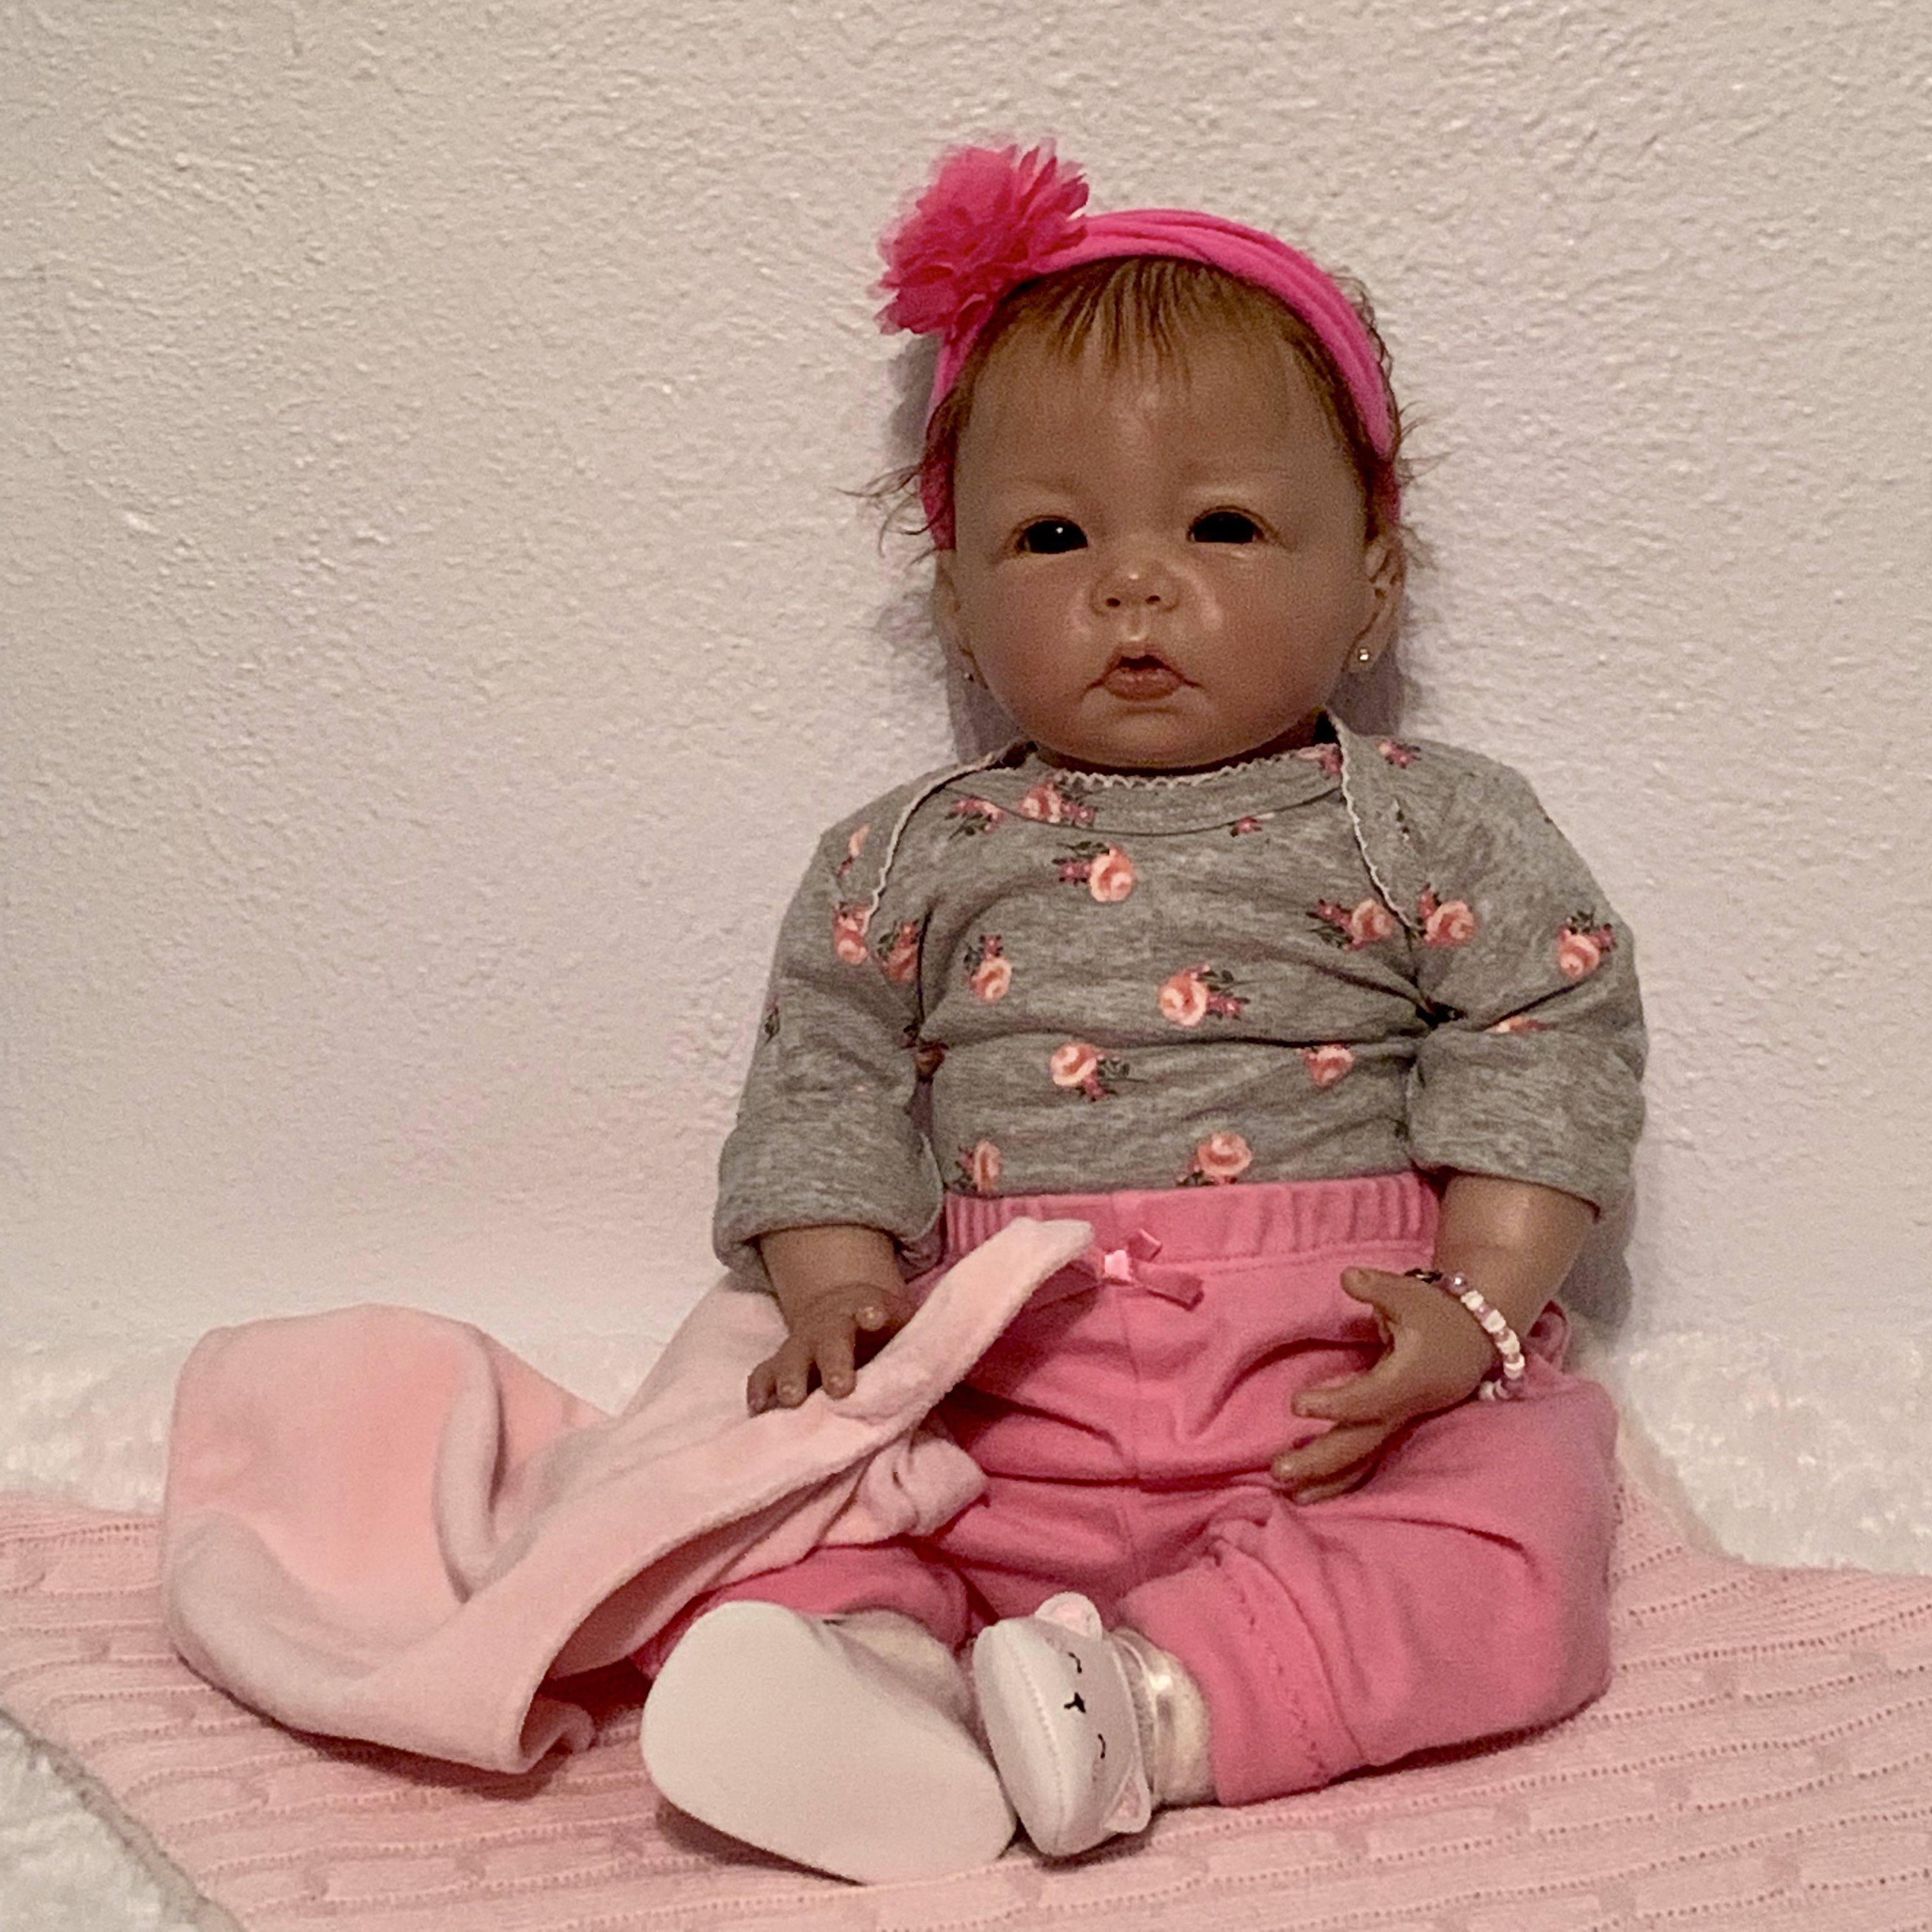 Pin by Baby Cakes on Realistic doll Realistic dolls